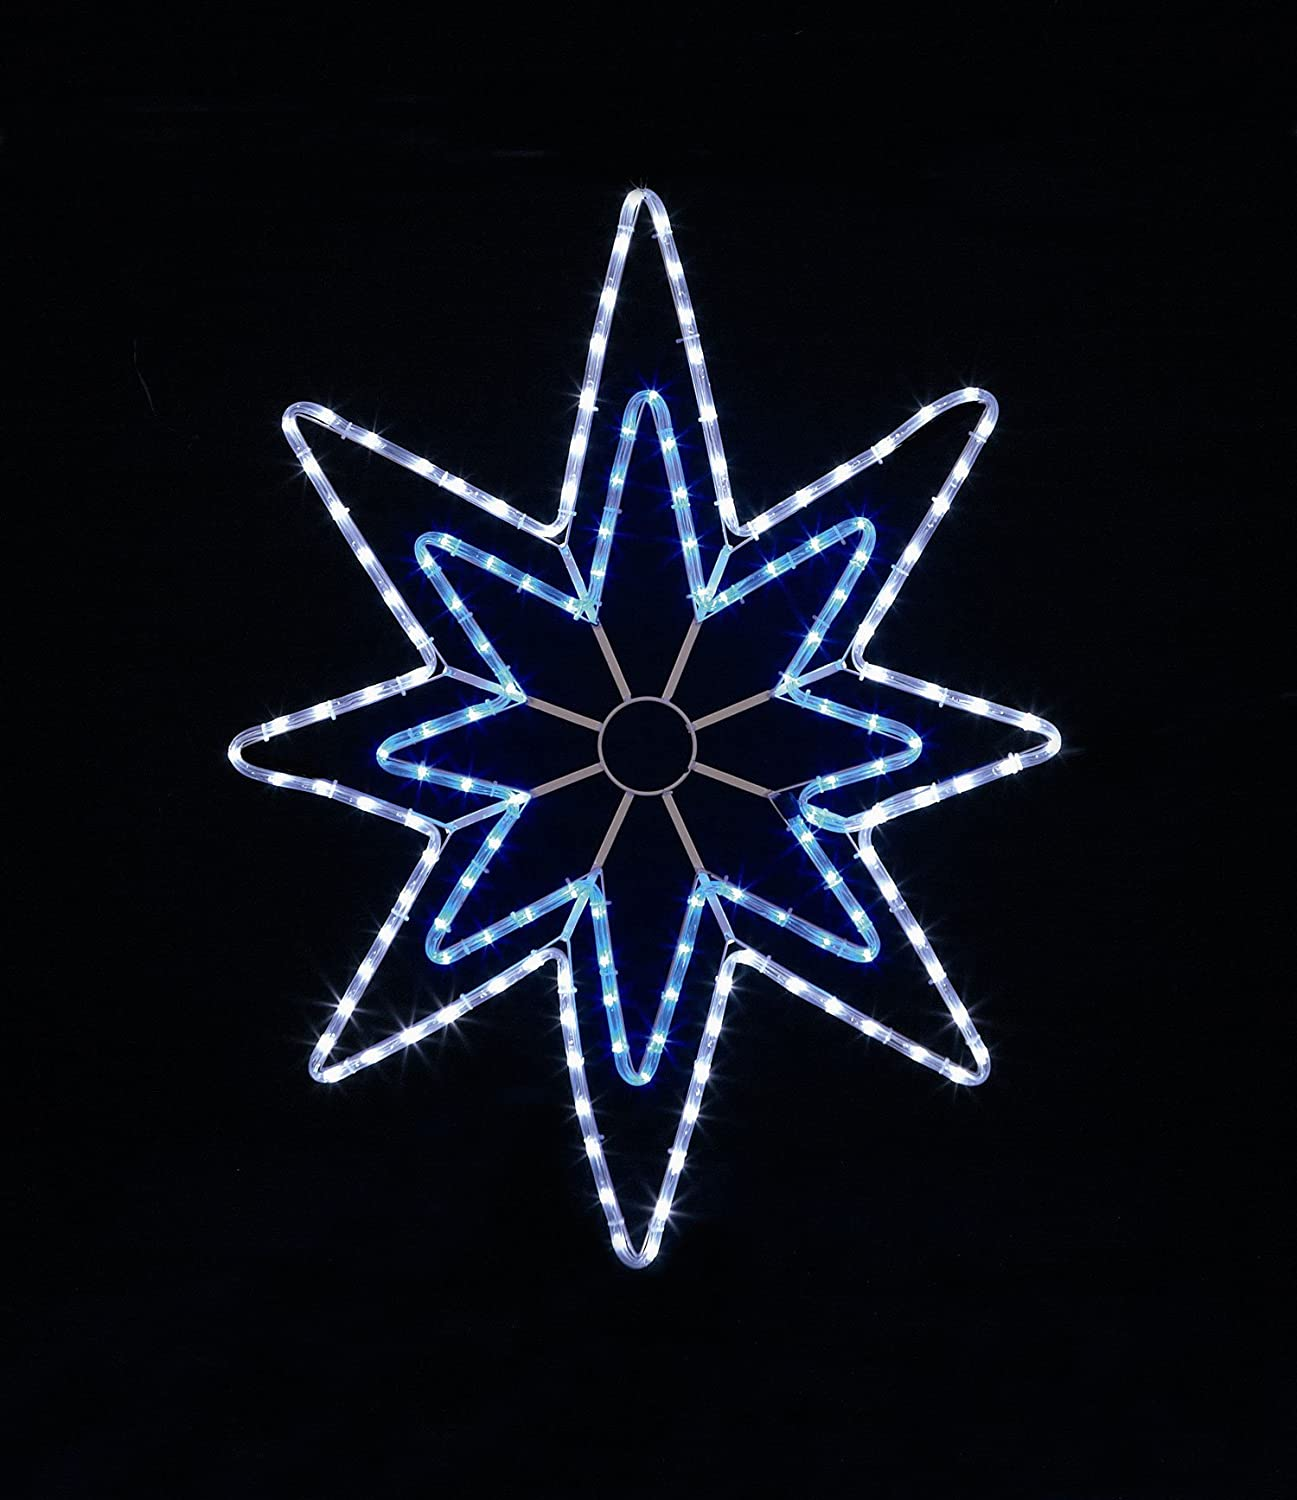 95cm x 70cm Blue & White LED Star Rope Light Silhouette Christmas Decoration Premier